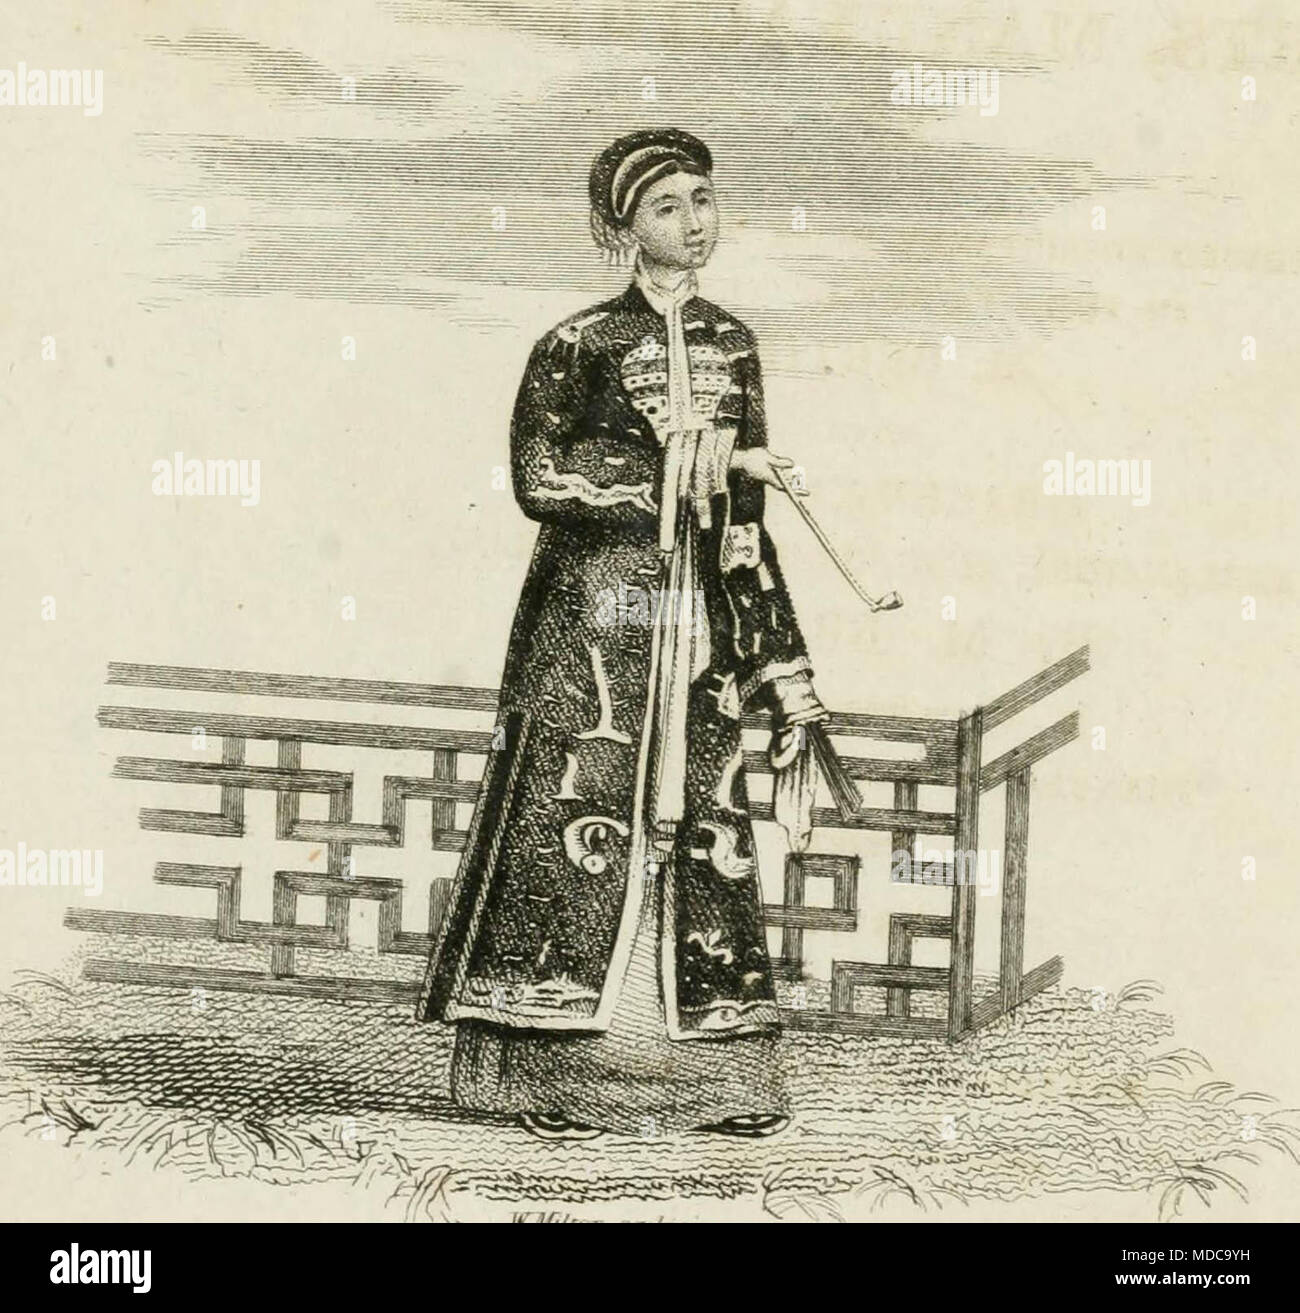 'China, its costume, arts, manufactures, &c. : edited principally from the originals in the cabinet of the late M. Bertin, with observations explanatory, historical, and literary' (1812) - Stock Image